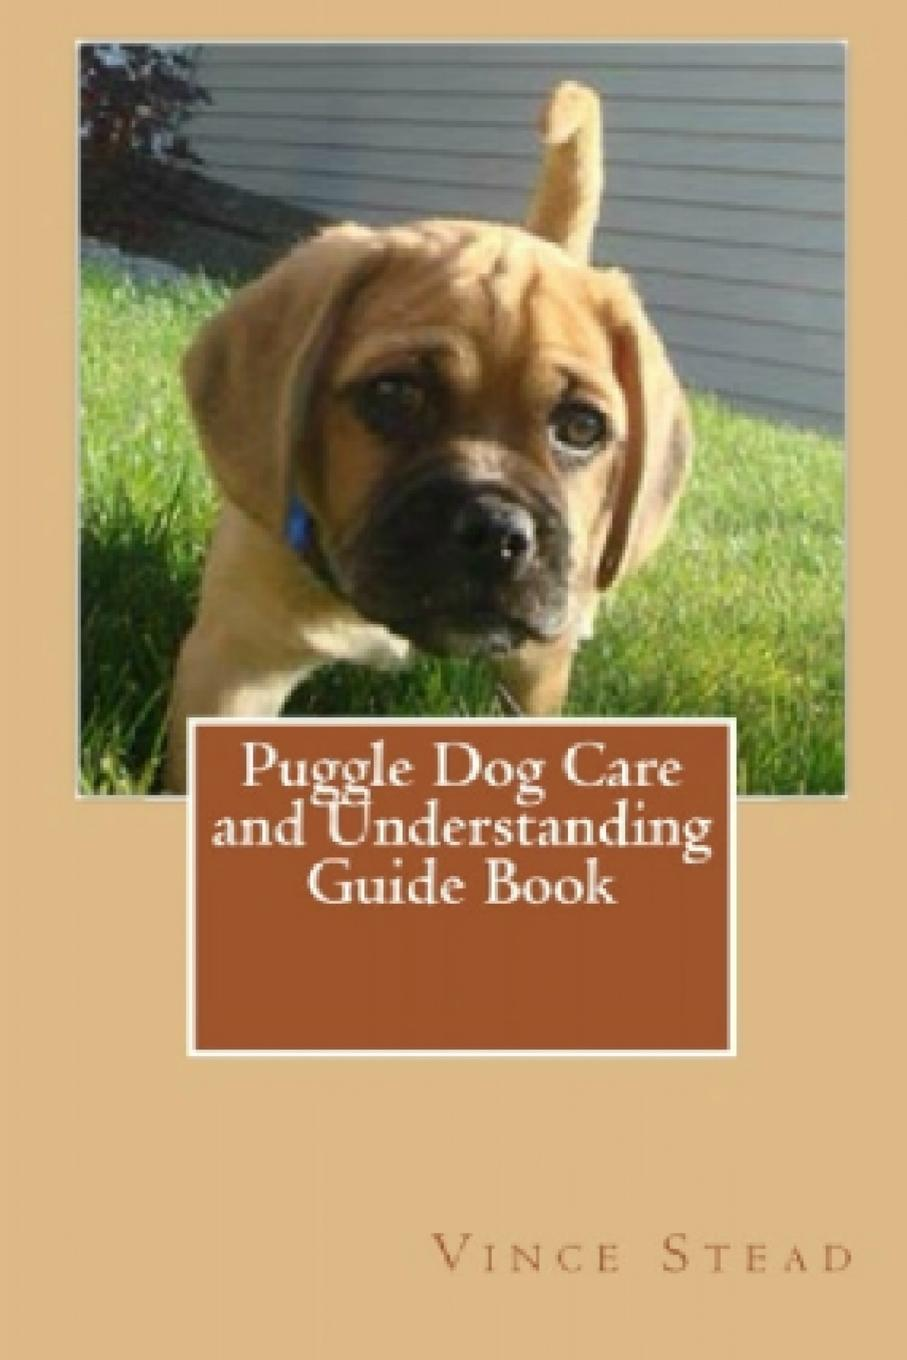 Vince Stead Puggle Dog Care and Understanding Guide Book vince stead old english sheepdog puppy dog understanding and training